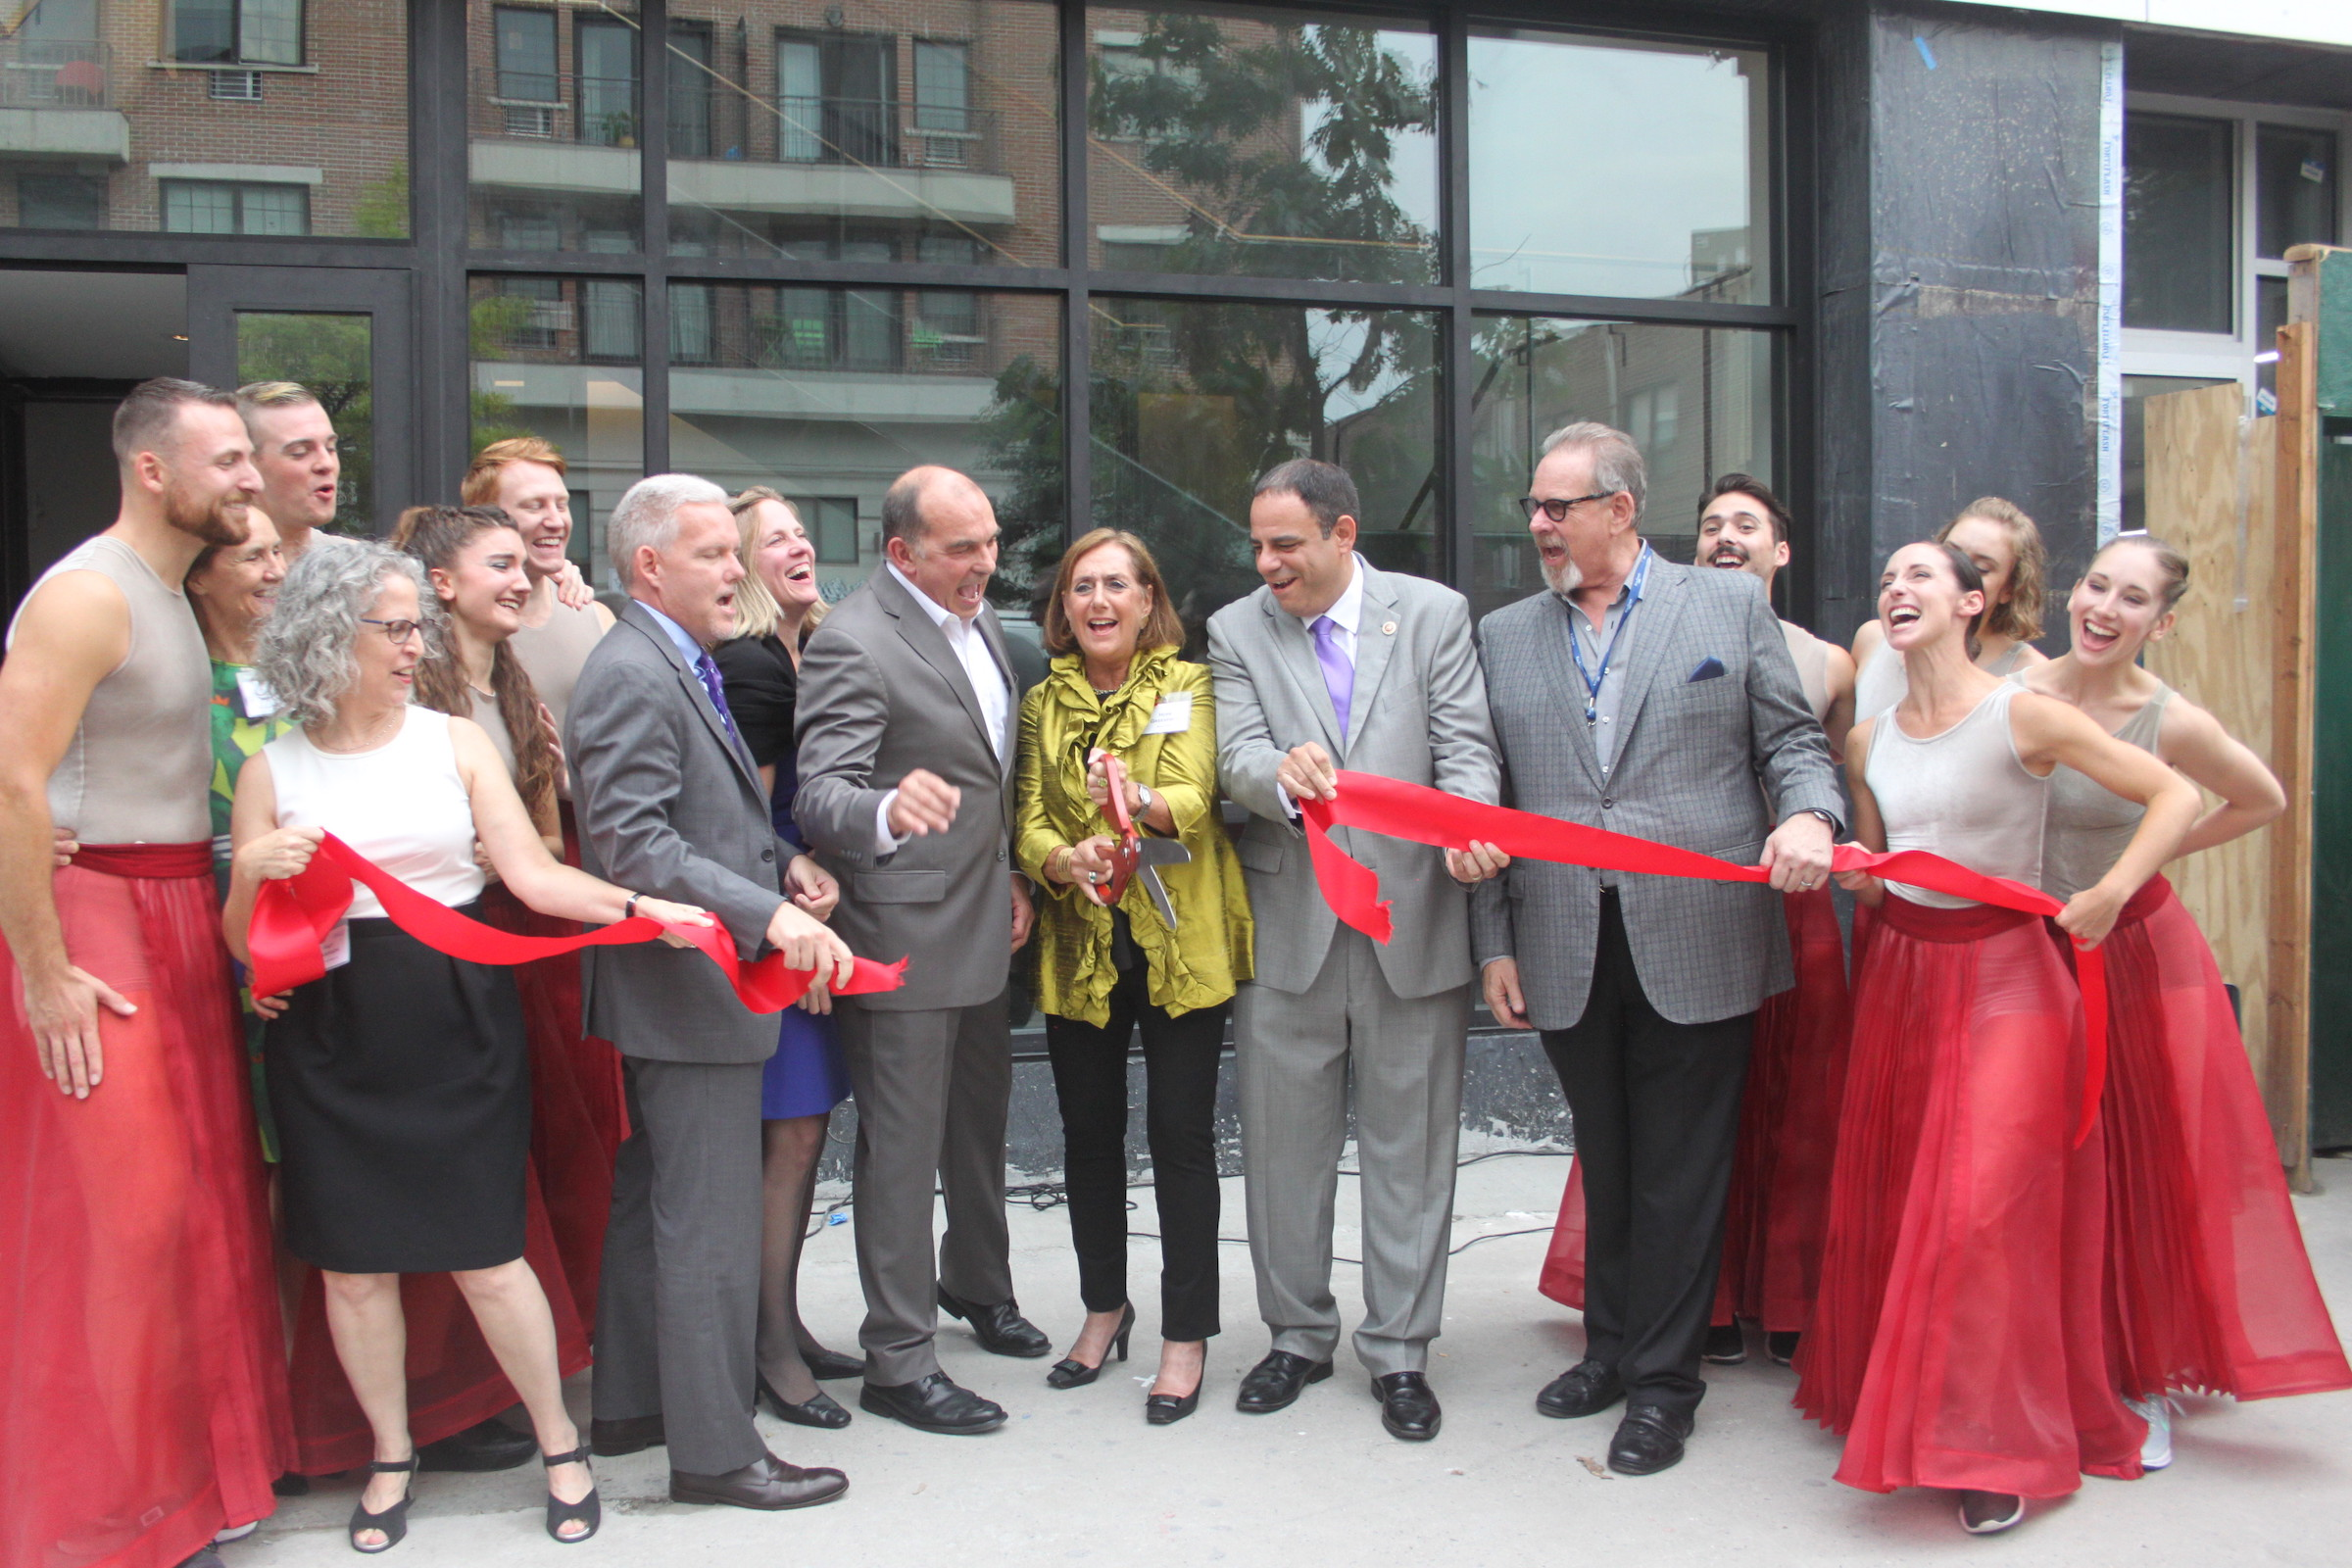 Astoria welcomed the RIOULT Dance Center to Steinway Street and 34th Avenue with a ribbon cutting ceremony.